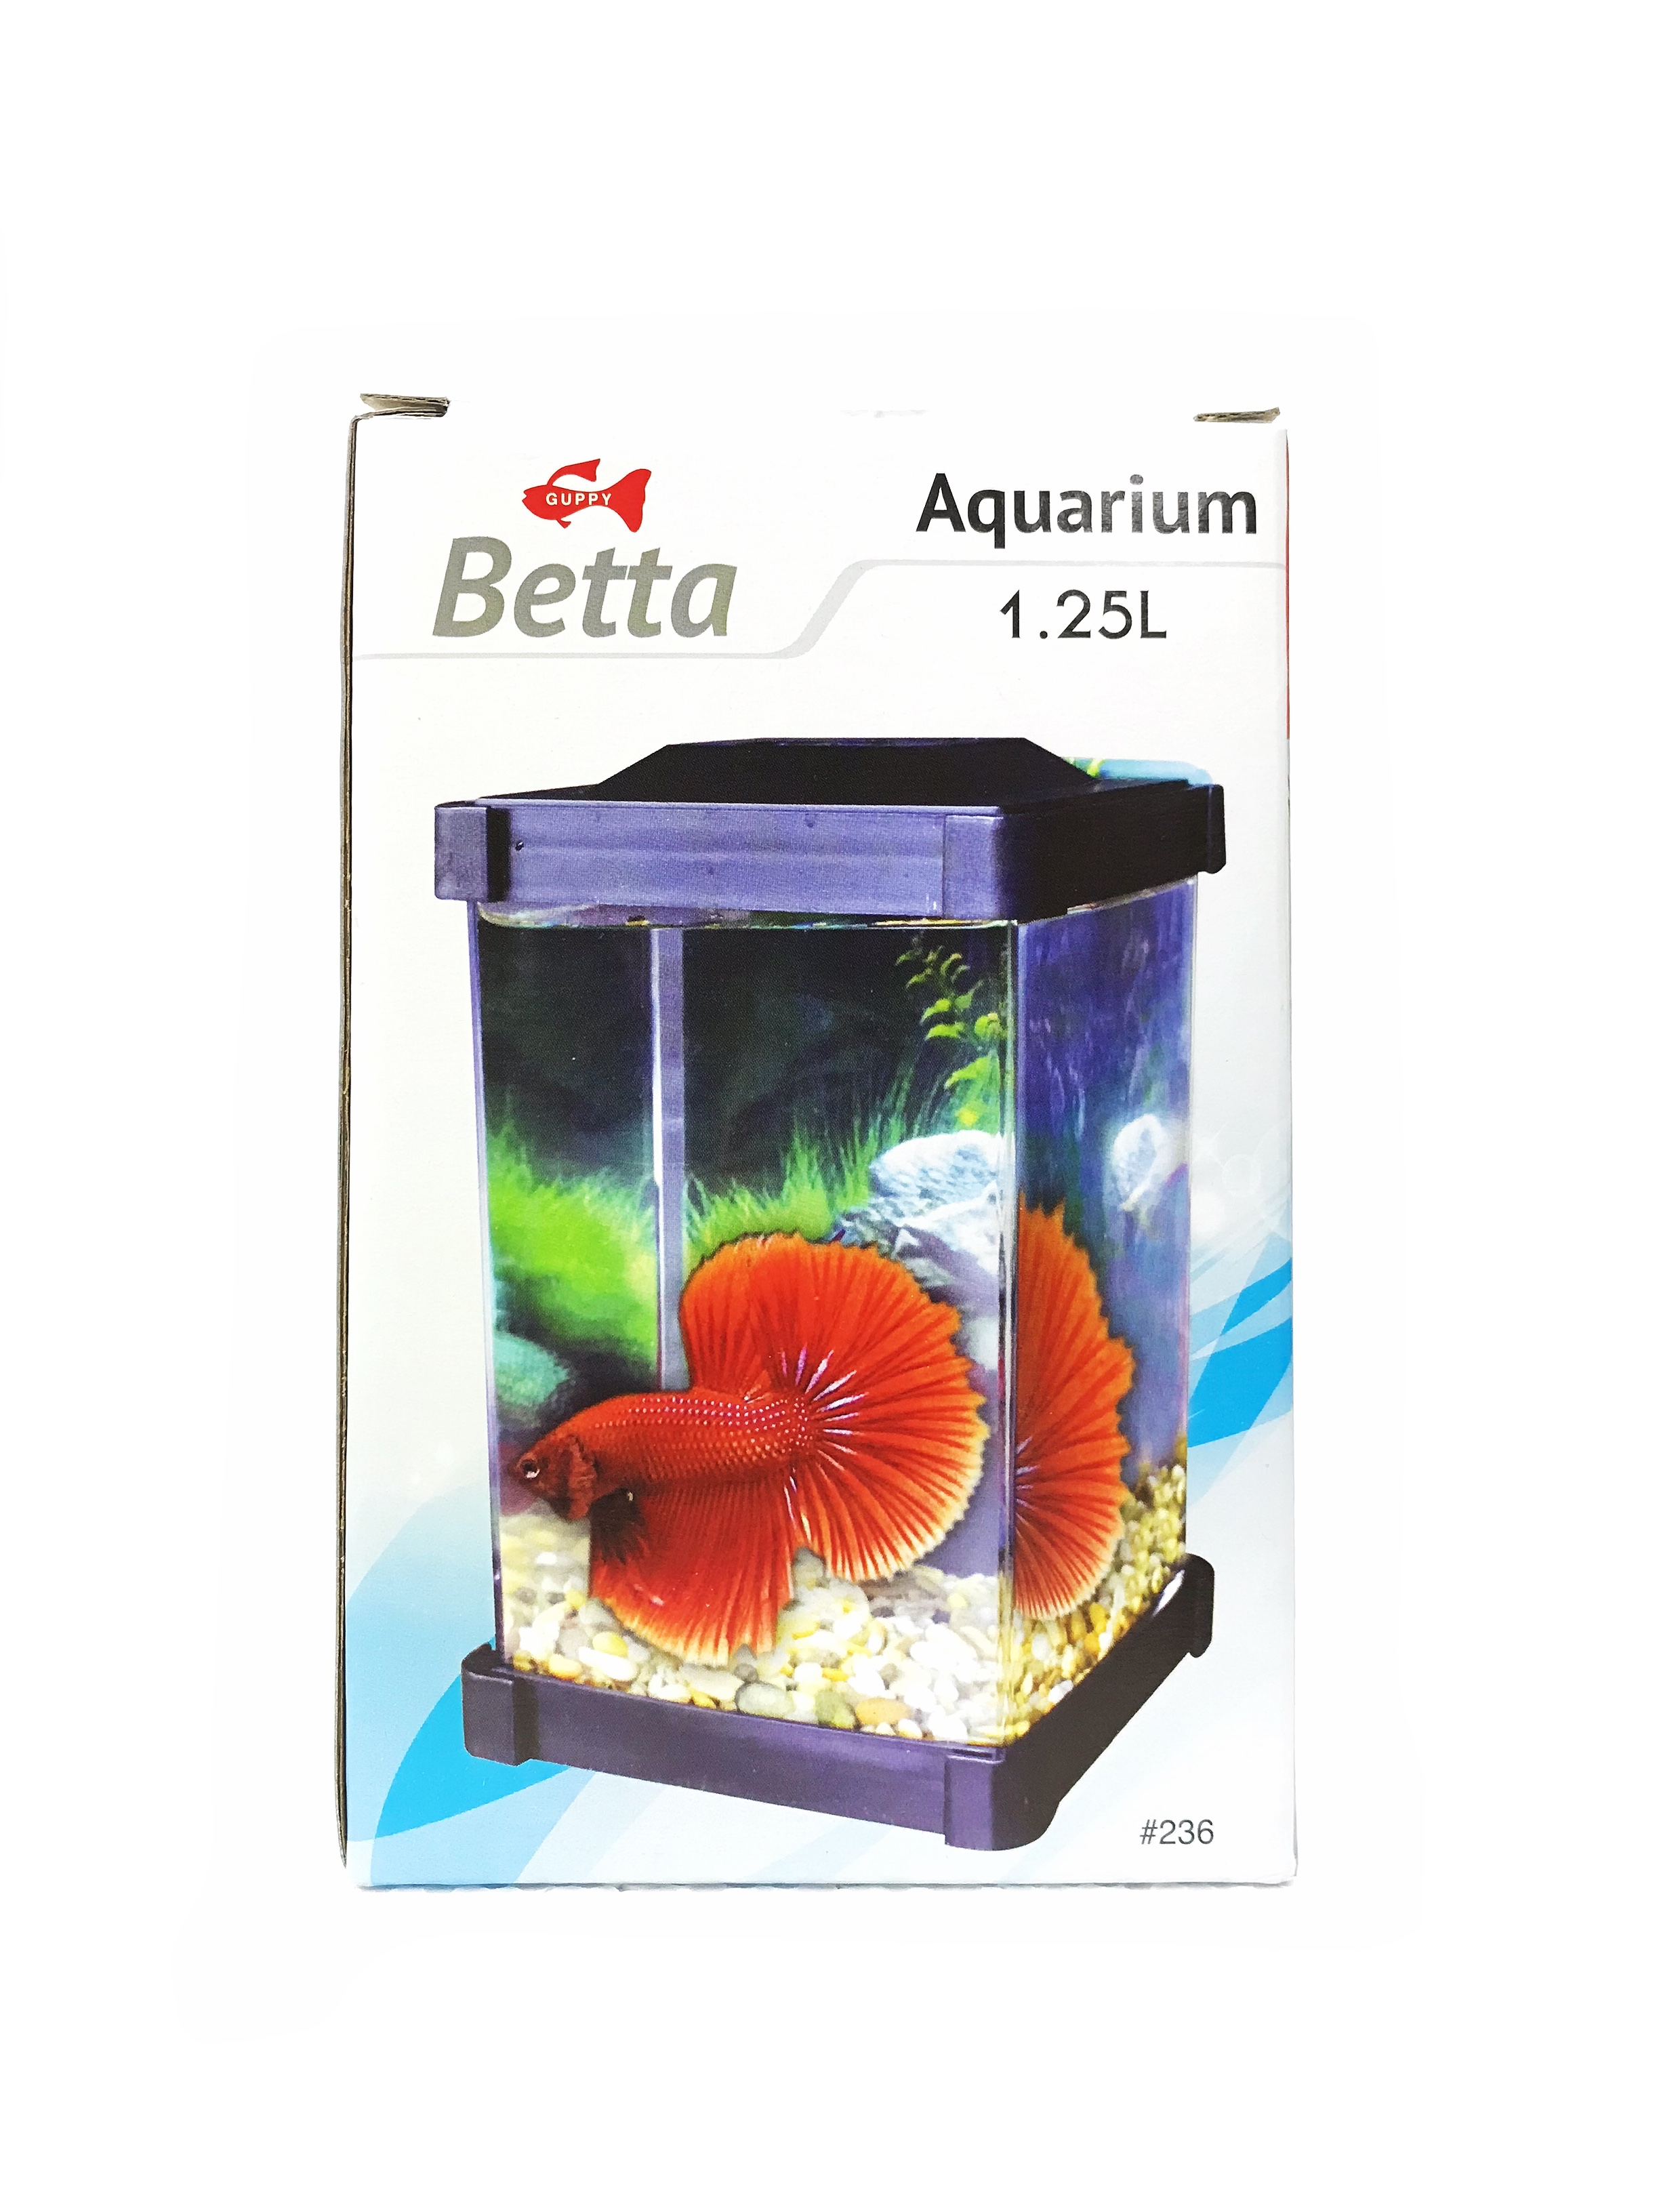 Guppy Betta Aquarium 1.25 Litres